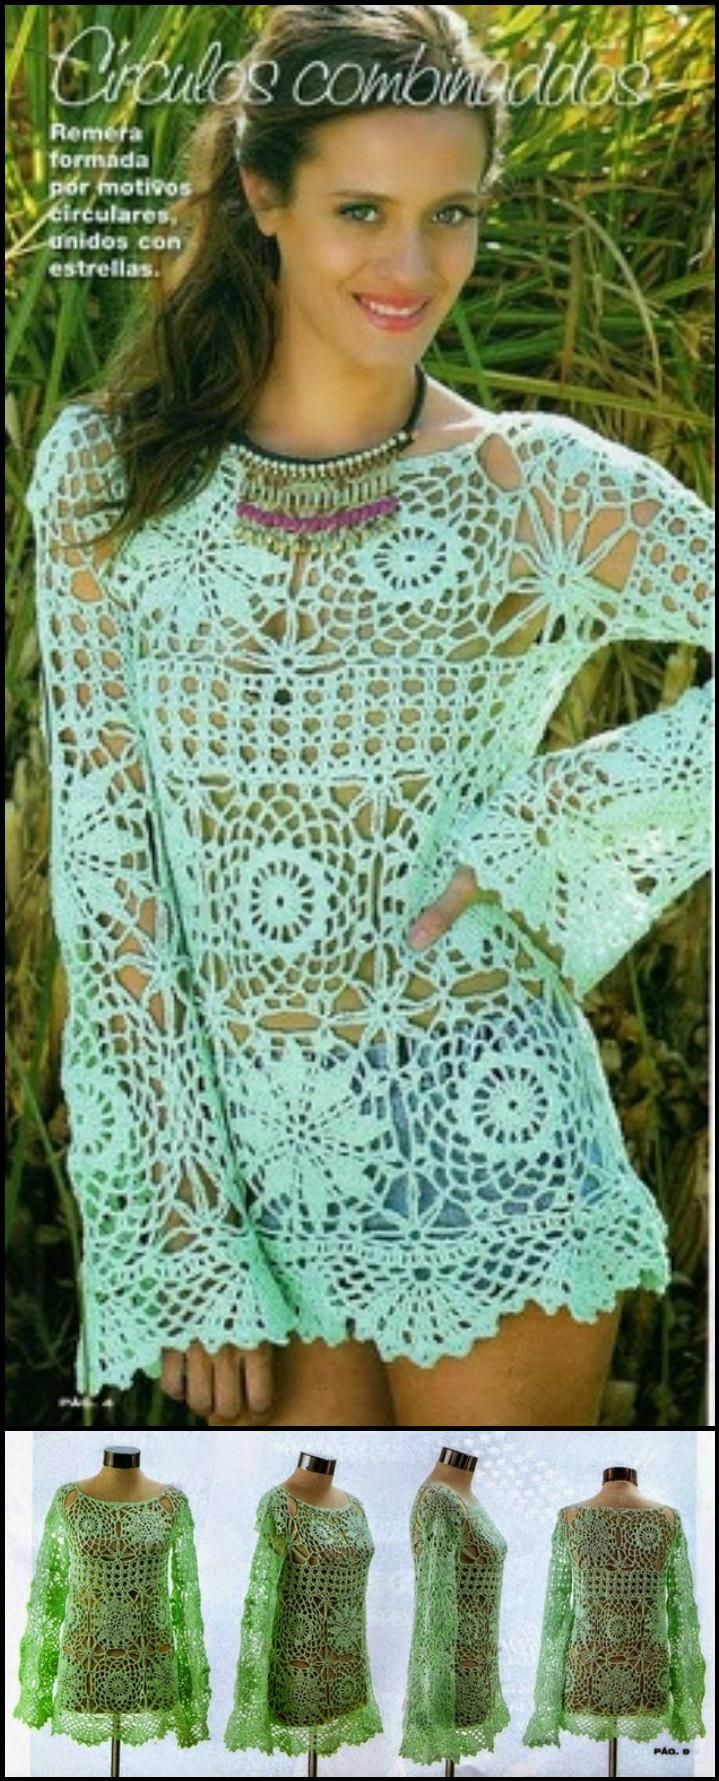 50+ Quick & Easy Crochet Summer Tops - Free Patterns - Page 8 of 9 - DIY & Crafts